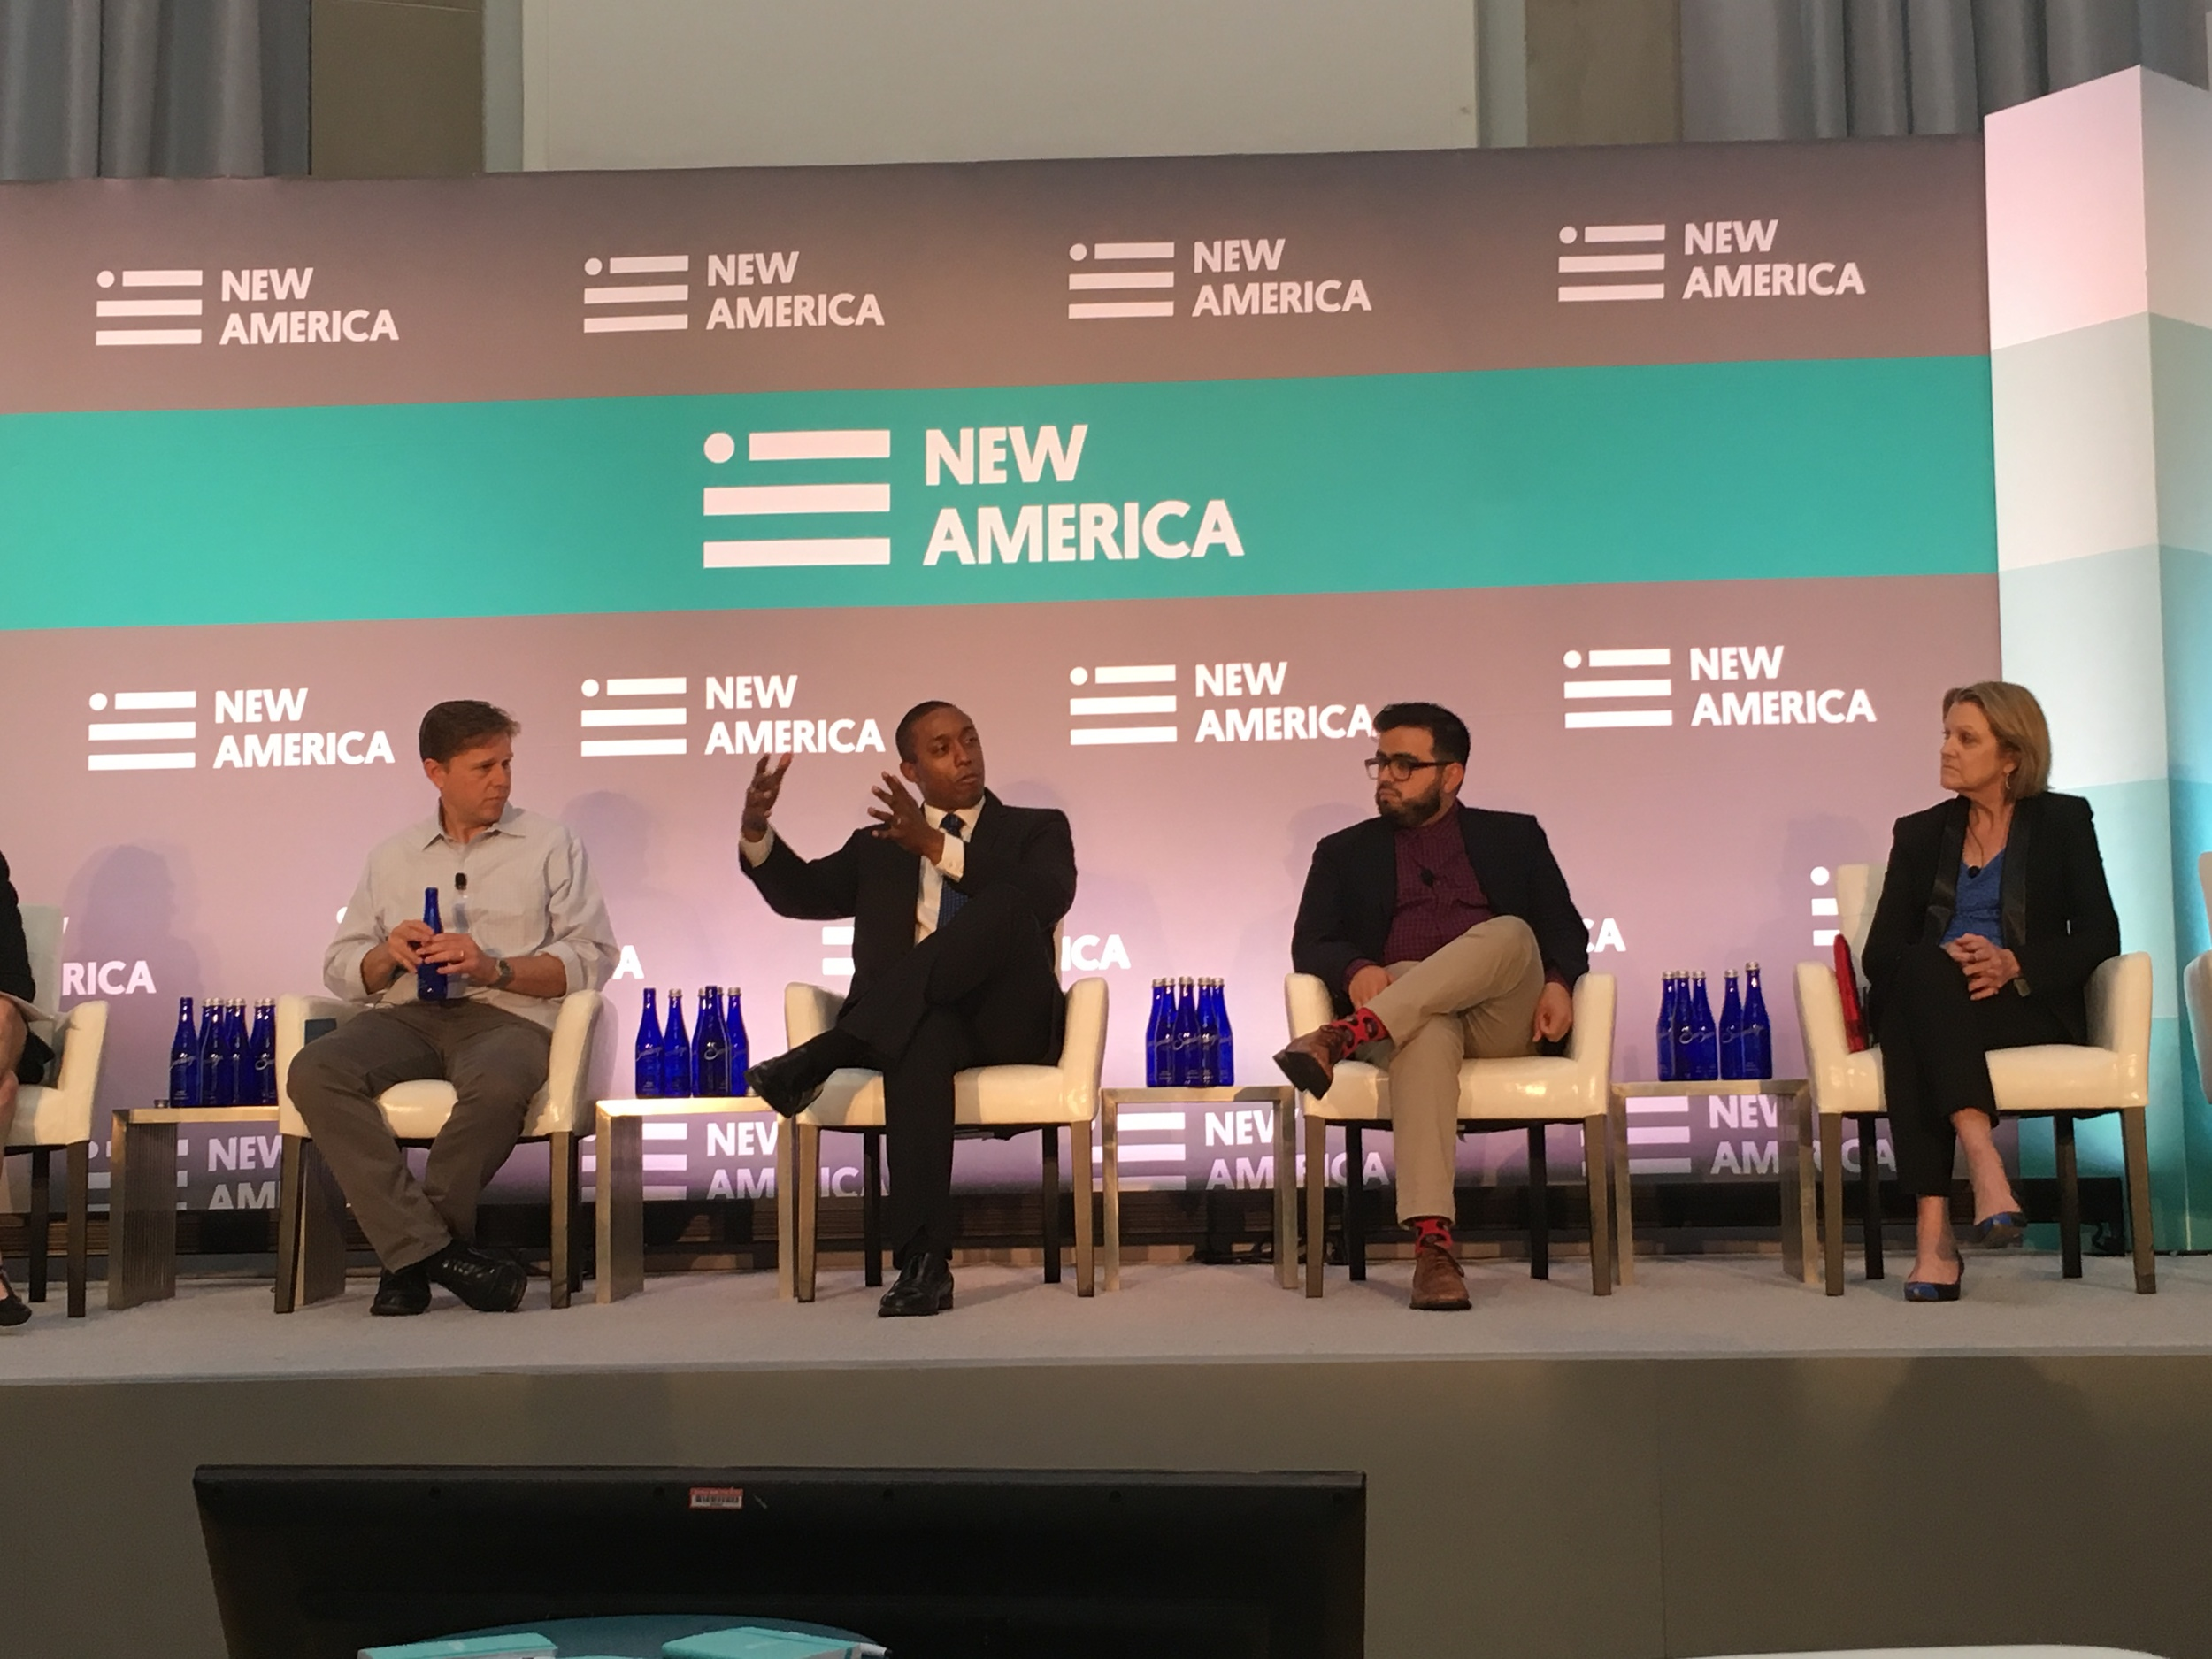 """Chike Aguh discusses the important of digital equity on a panel called """"The ABCs of the New Digital Citizen: Adoption, Broadband, Context""""at the 2016 New America Conference."""